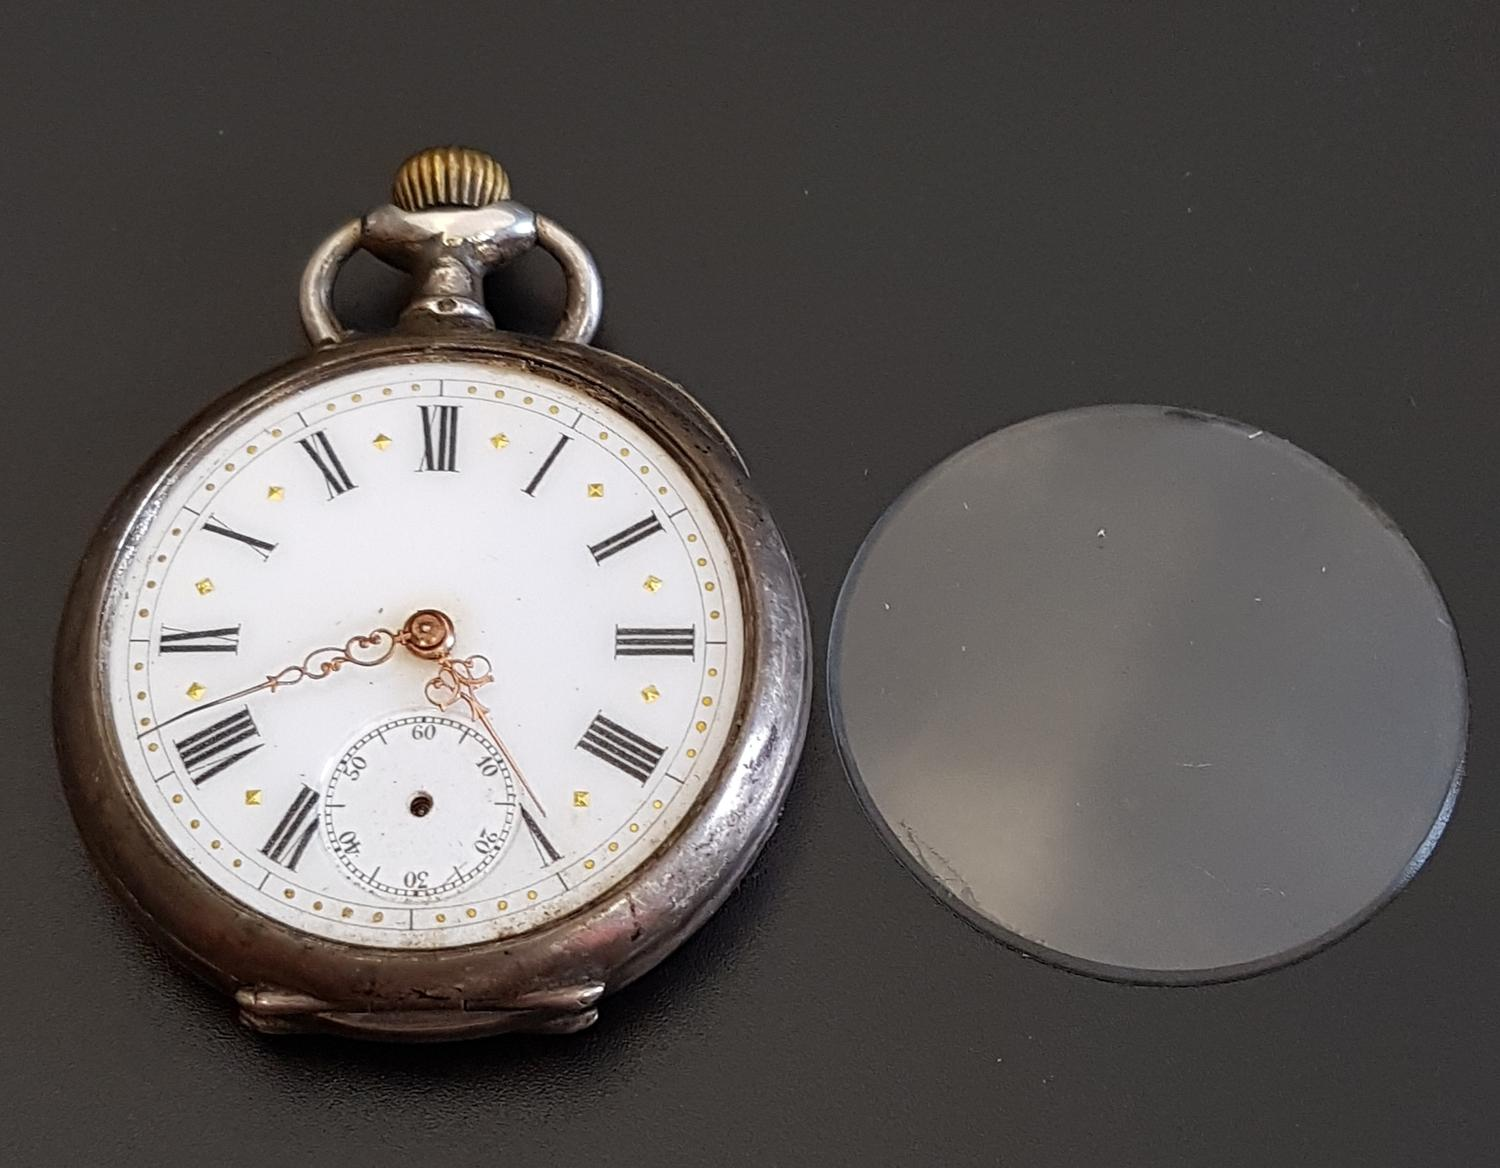 Lot 104 - SILVER CASED POCKET WATCH the white enamel dial with Roman numerals, subsidiary seconds dial and